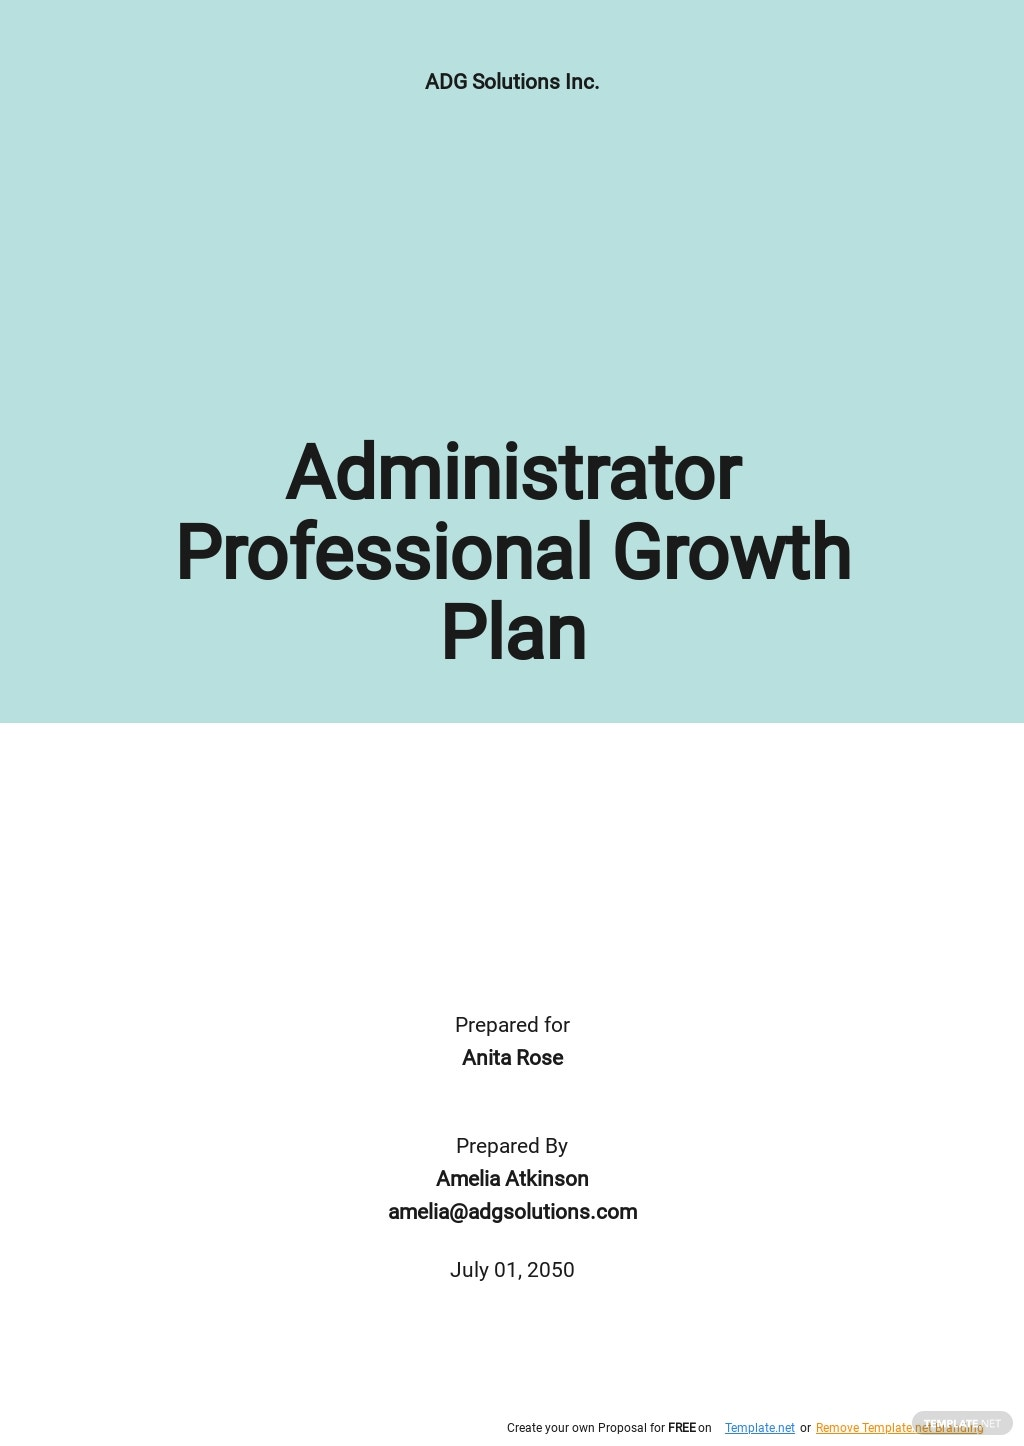 Administrator Professional Growth Plan Template.jpe